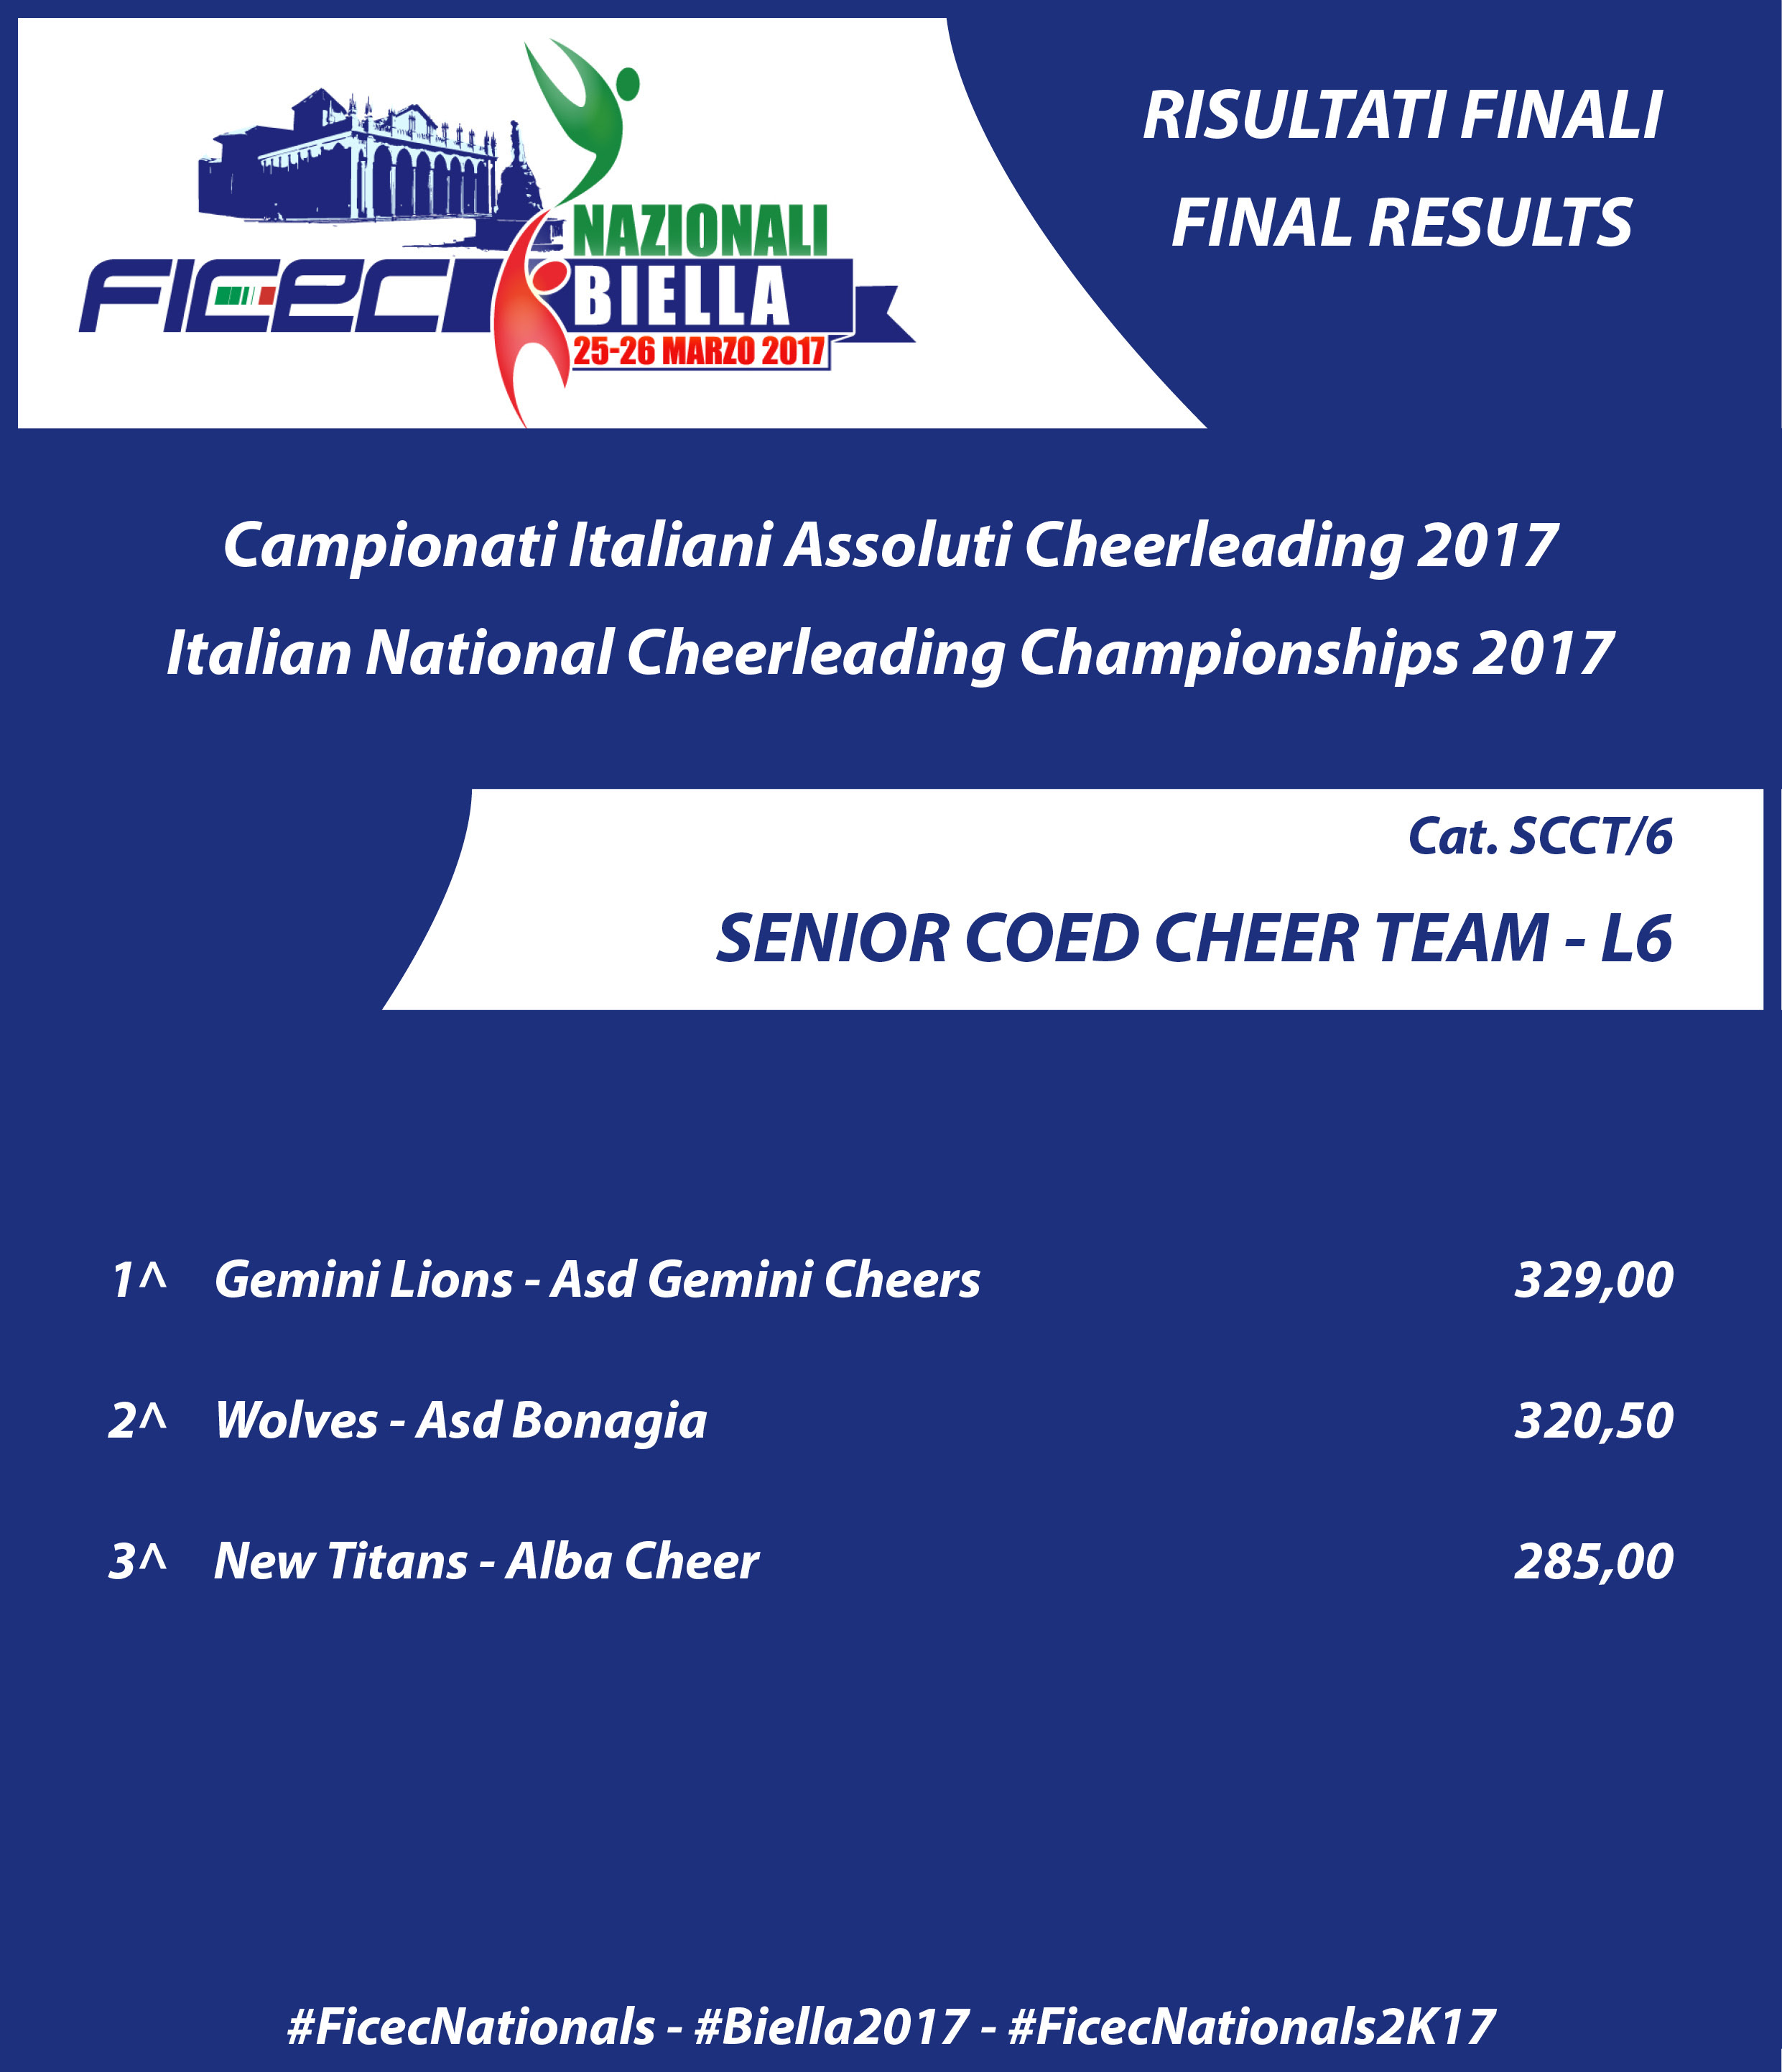 RESULTS nationals 2017 SCCT 6